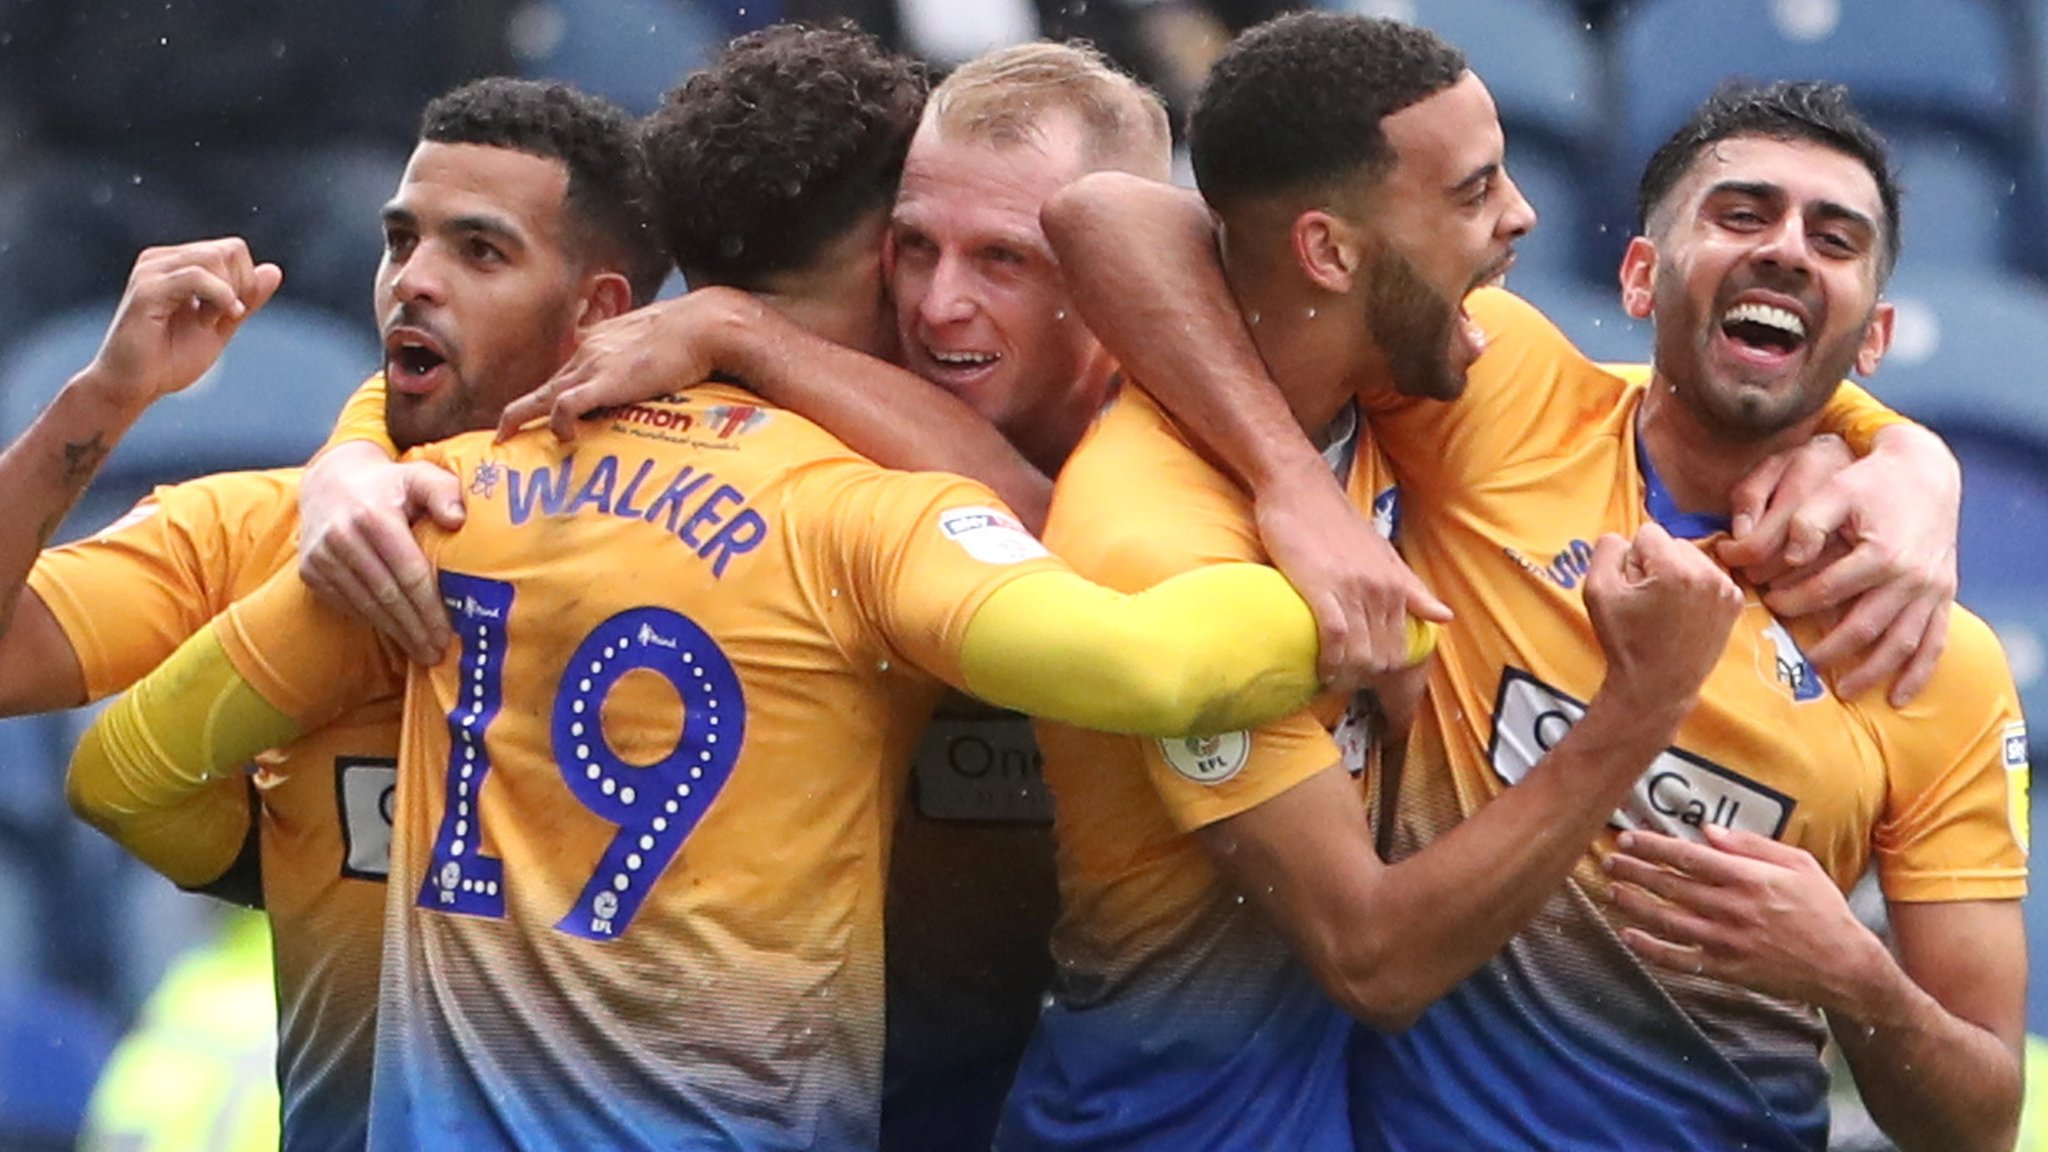 Mansfield Town 2-0 Notts County